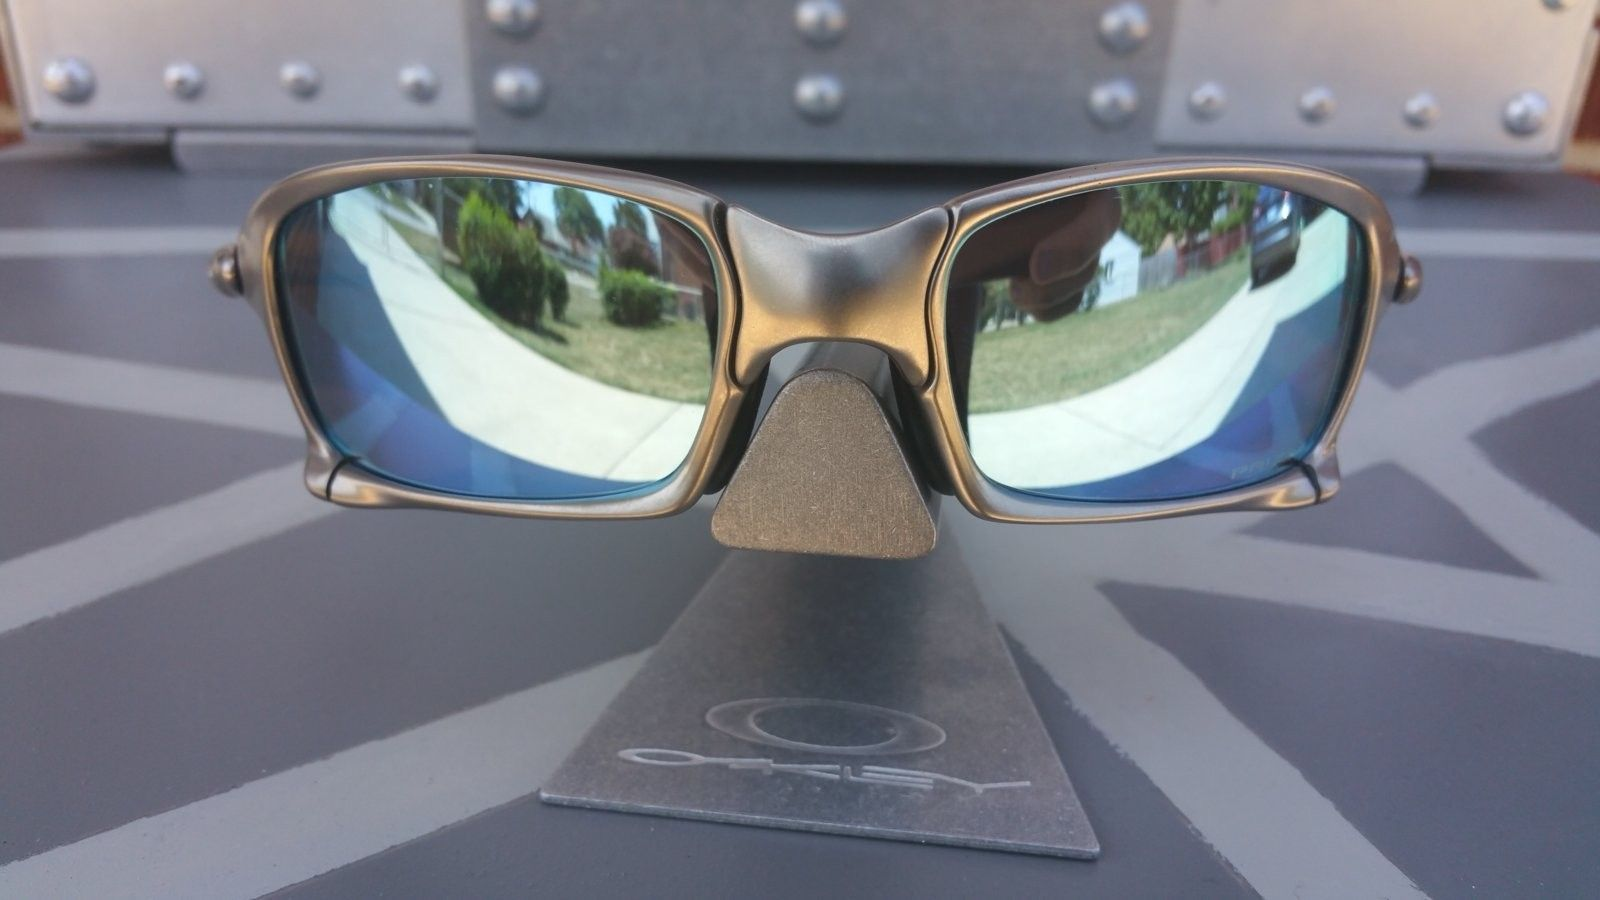 Plasma XS with DWP etched prizm lenses - 20160720_141001.jpg